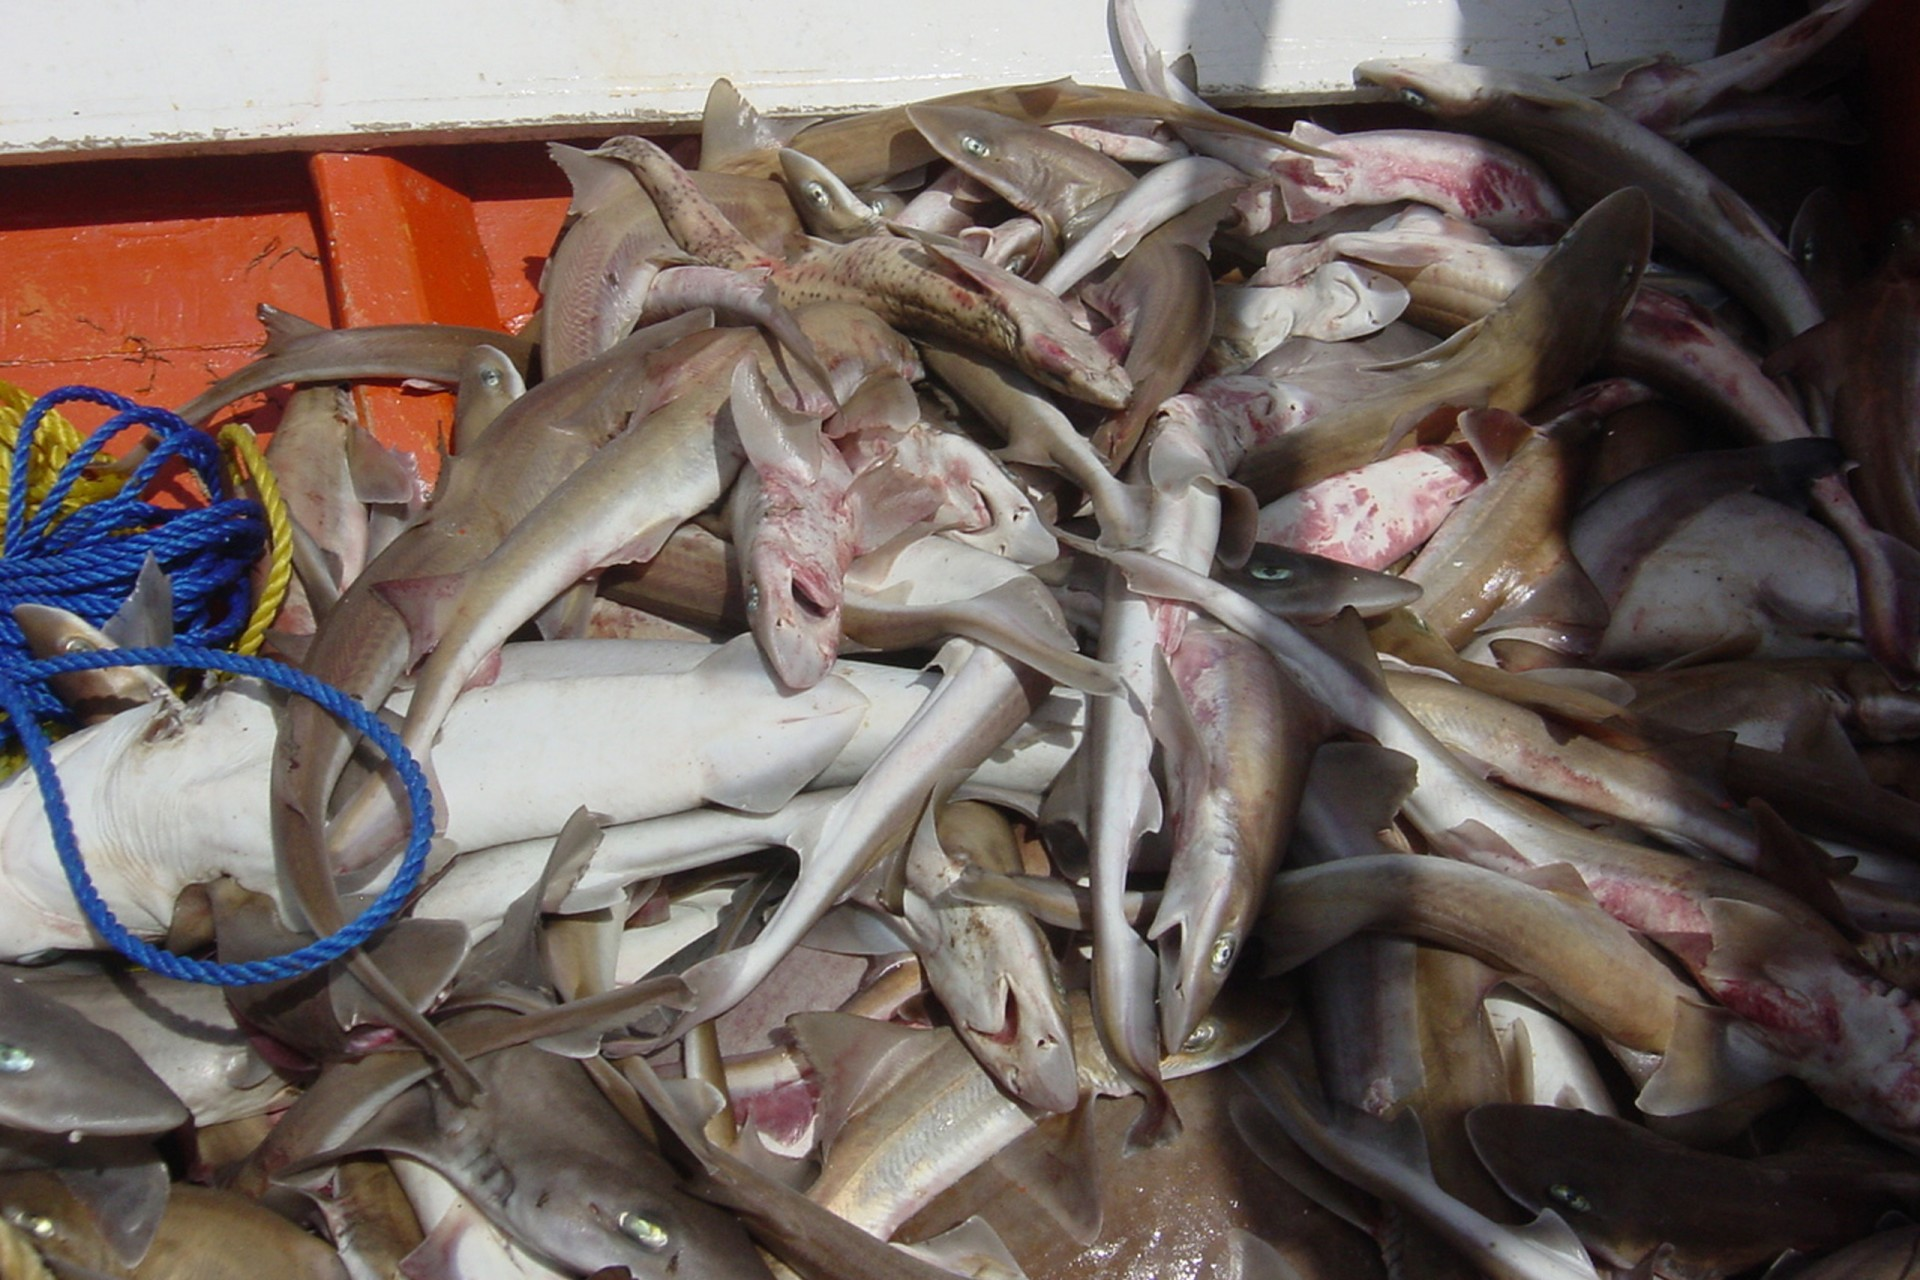 Fishing exclusion zones to help manage shark populations in Pacific Panama